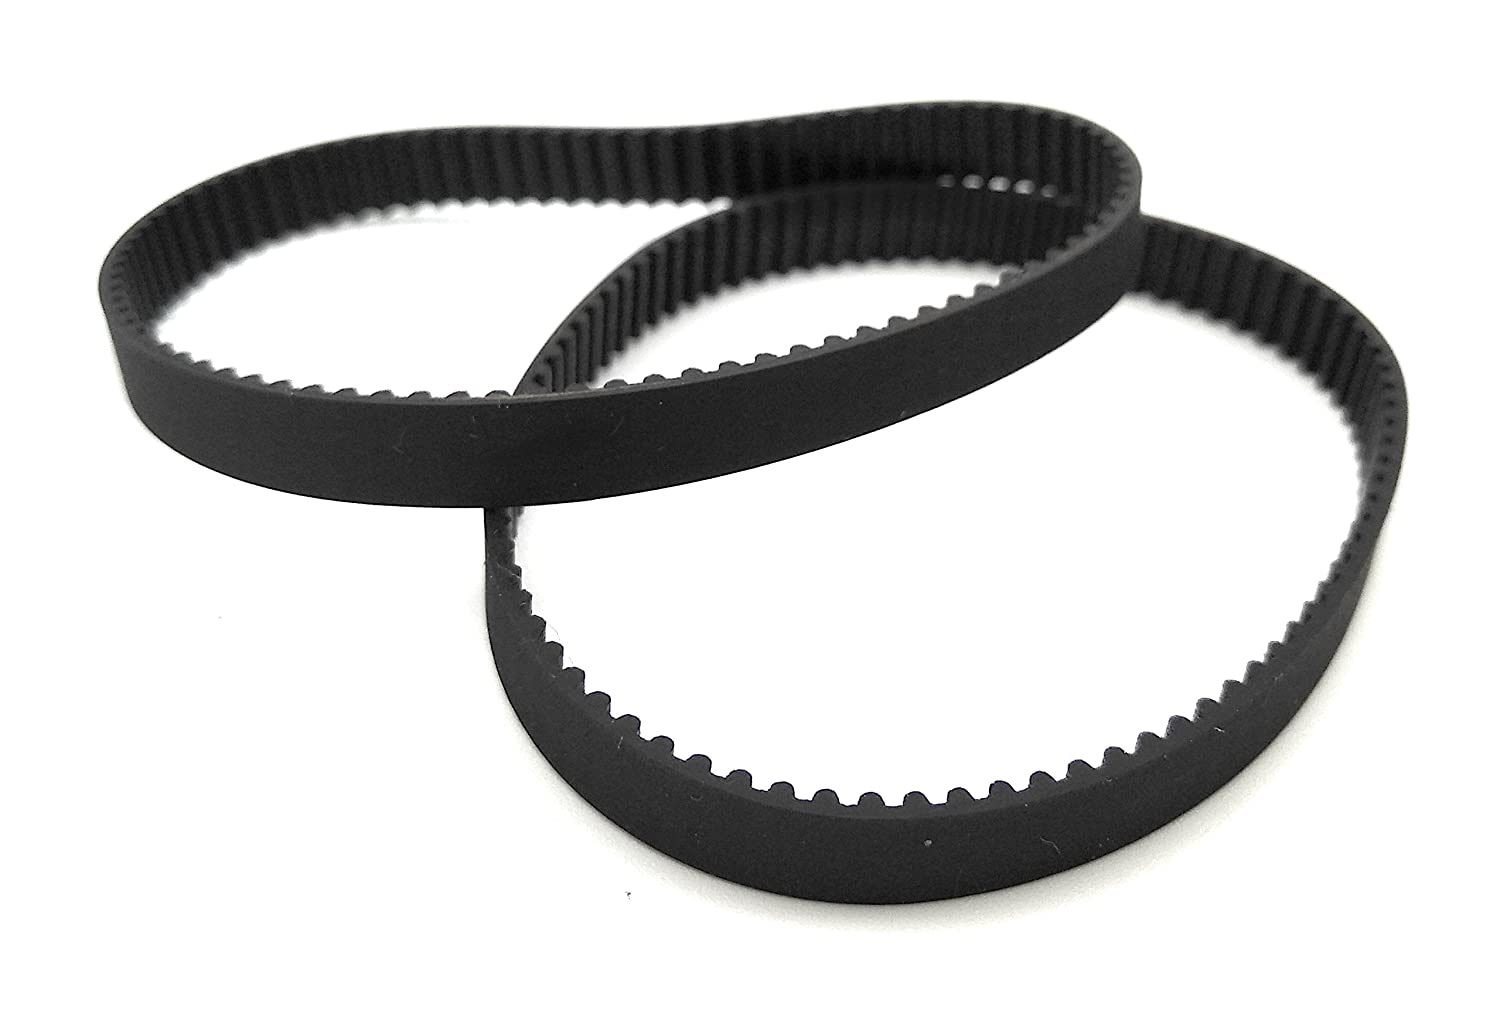 GT2  Closed Timing Belt Width 6  mm 2  pieces (many Lengths Available), 96 mm, 2 Turmberg3D